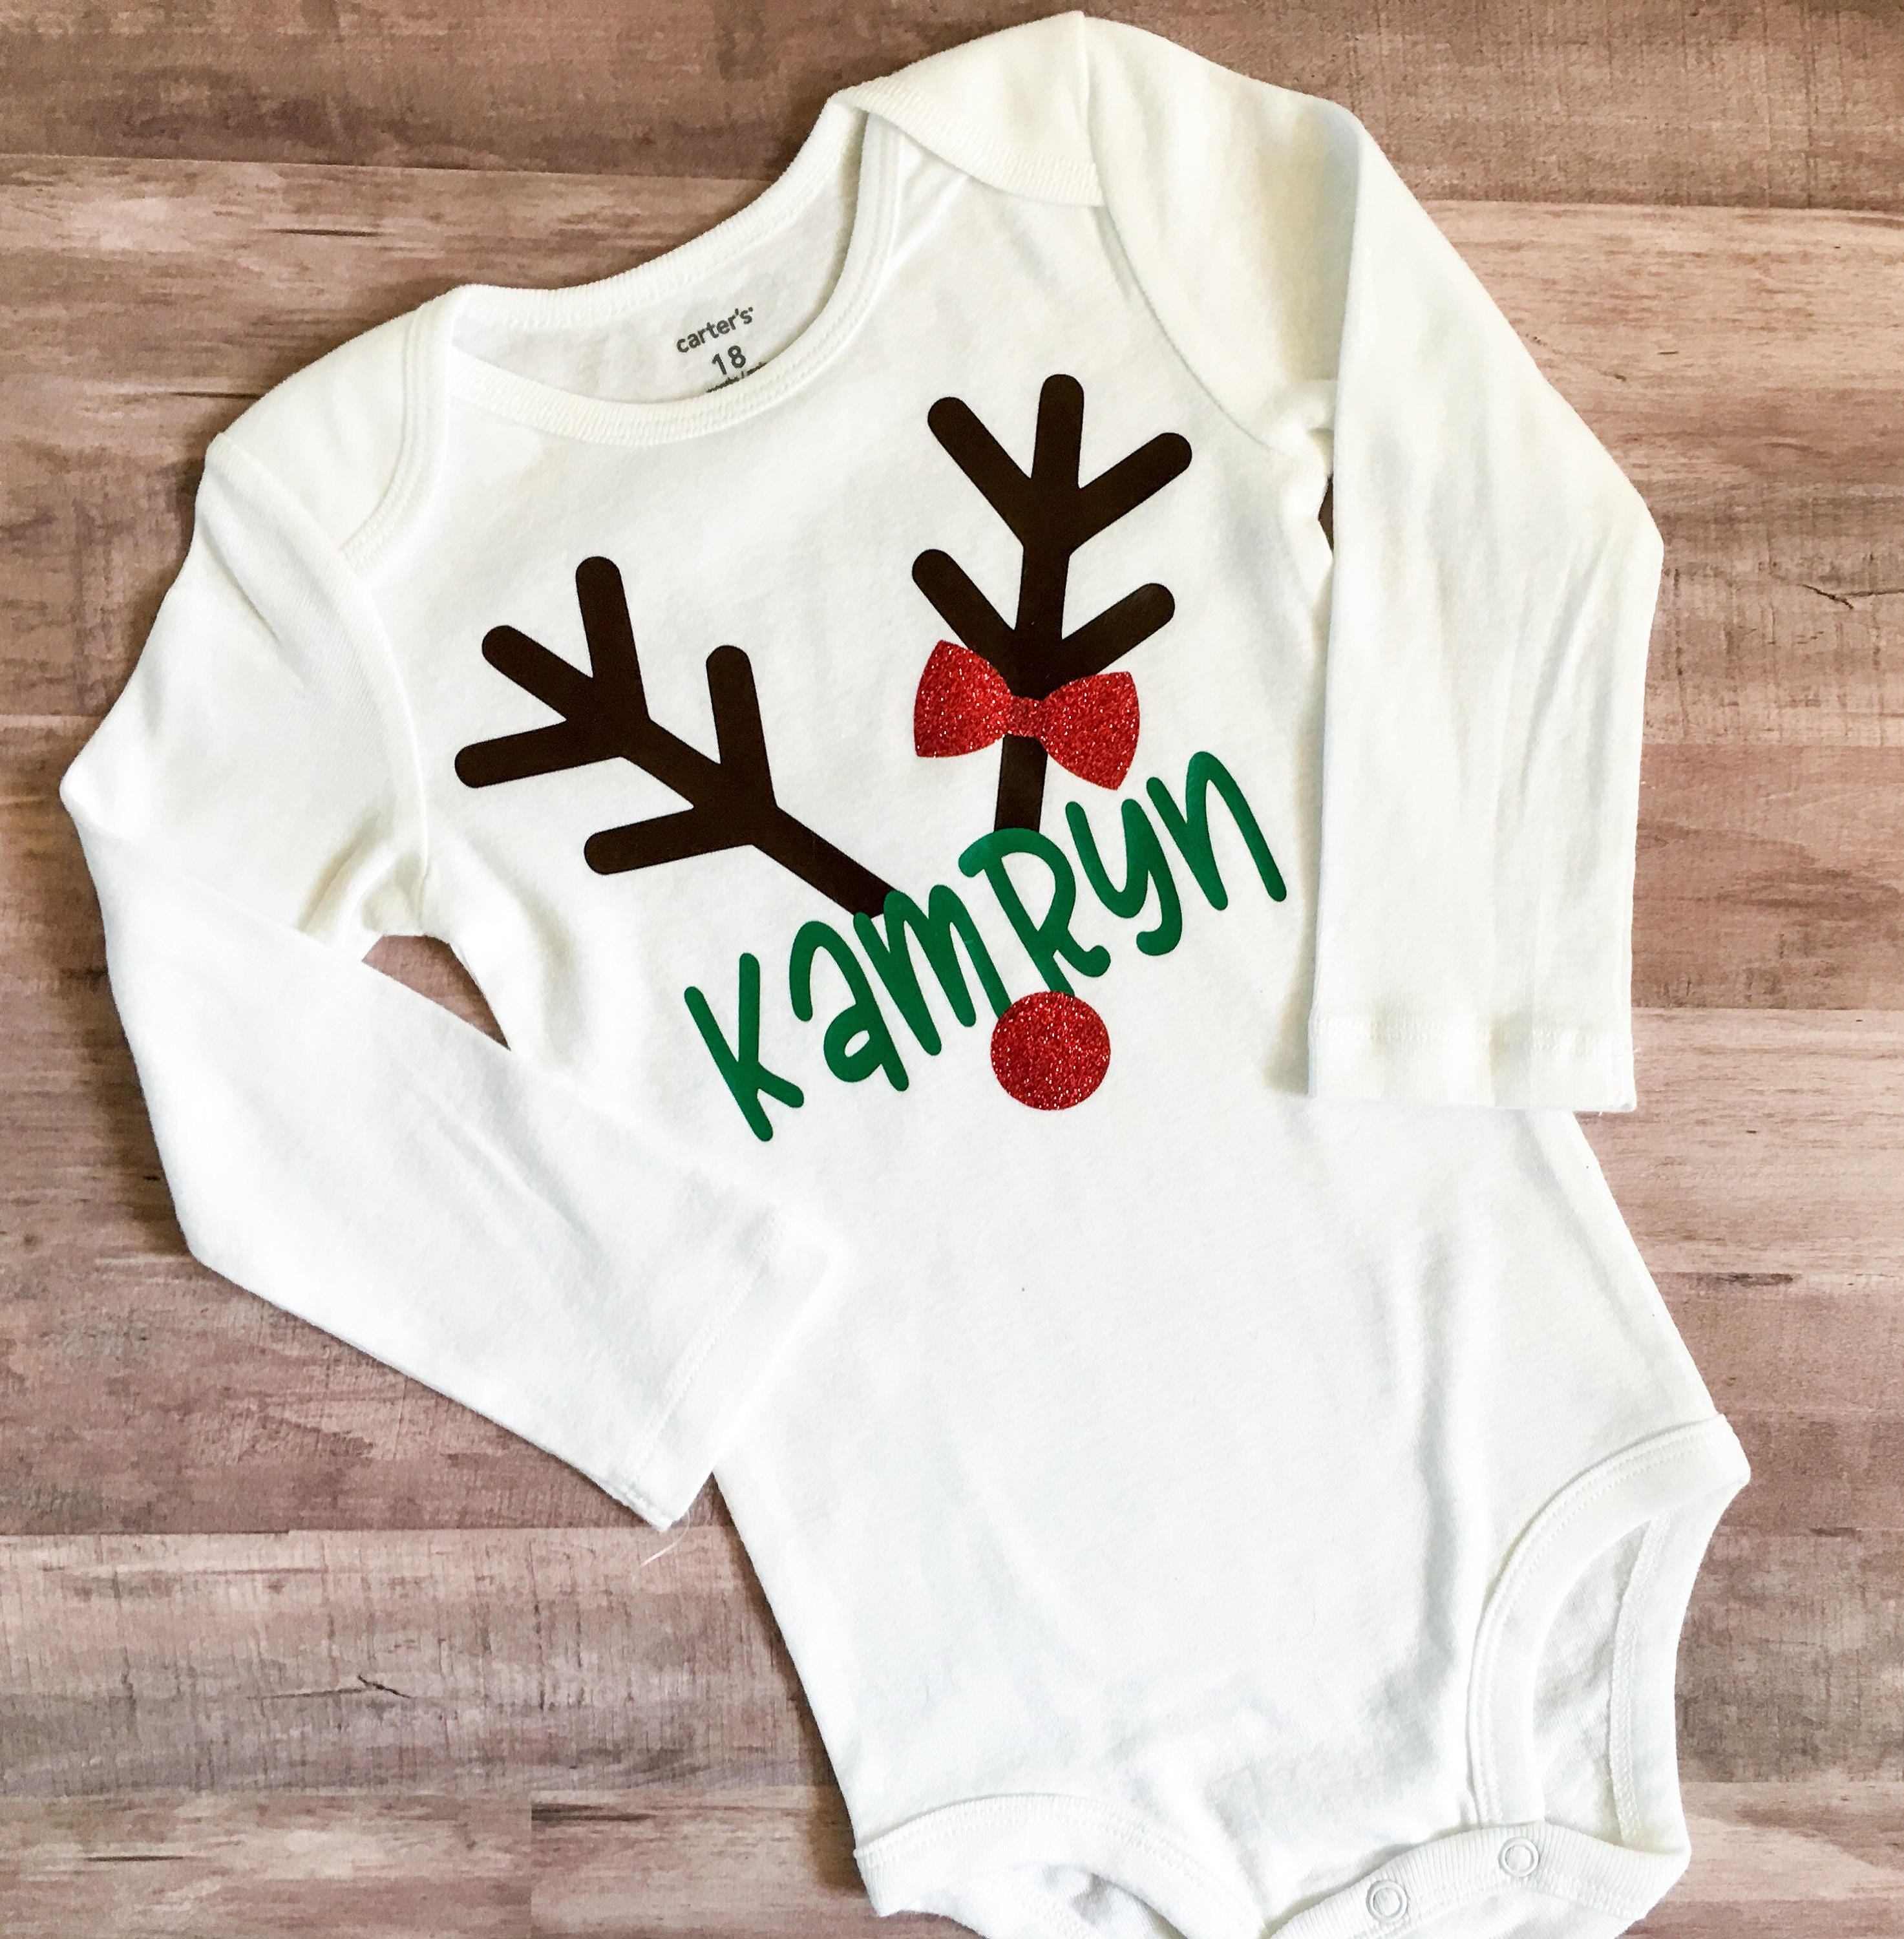 Reindeer Bodysuit Baby Girl Christmas Outfit Personalized   Etsy